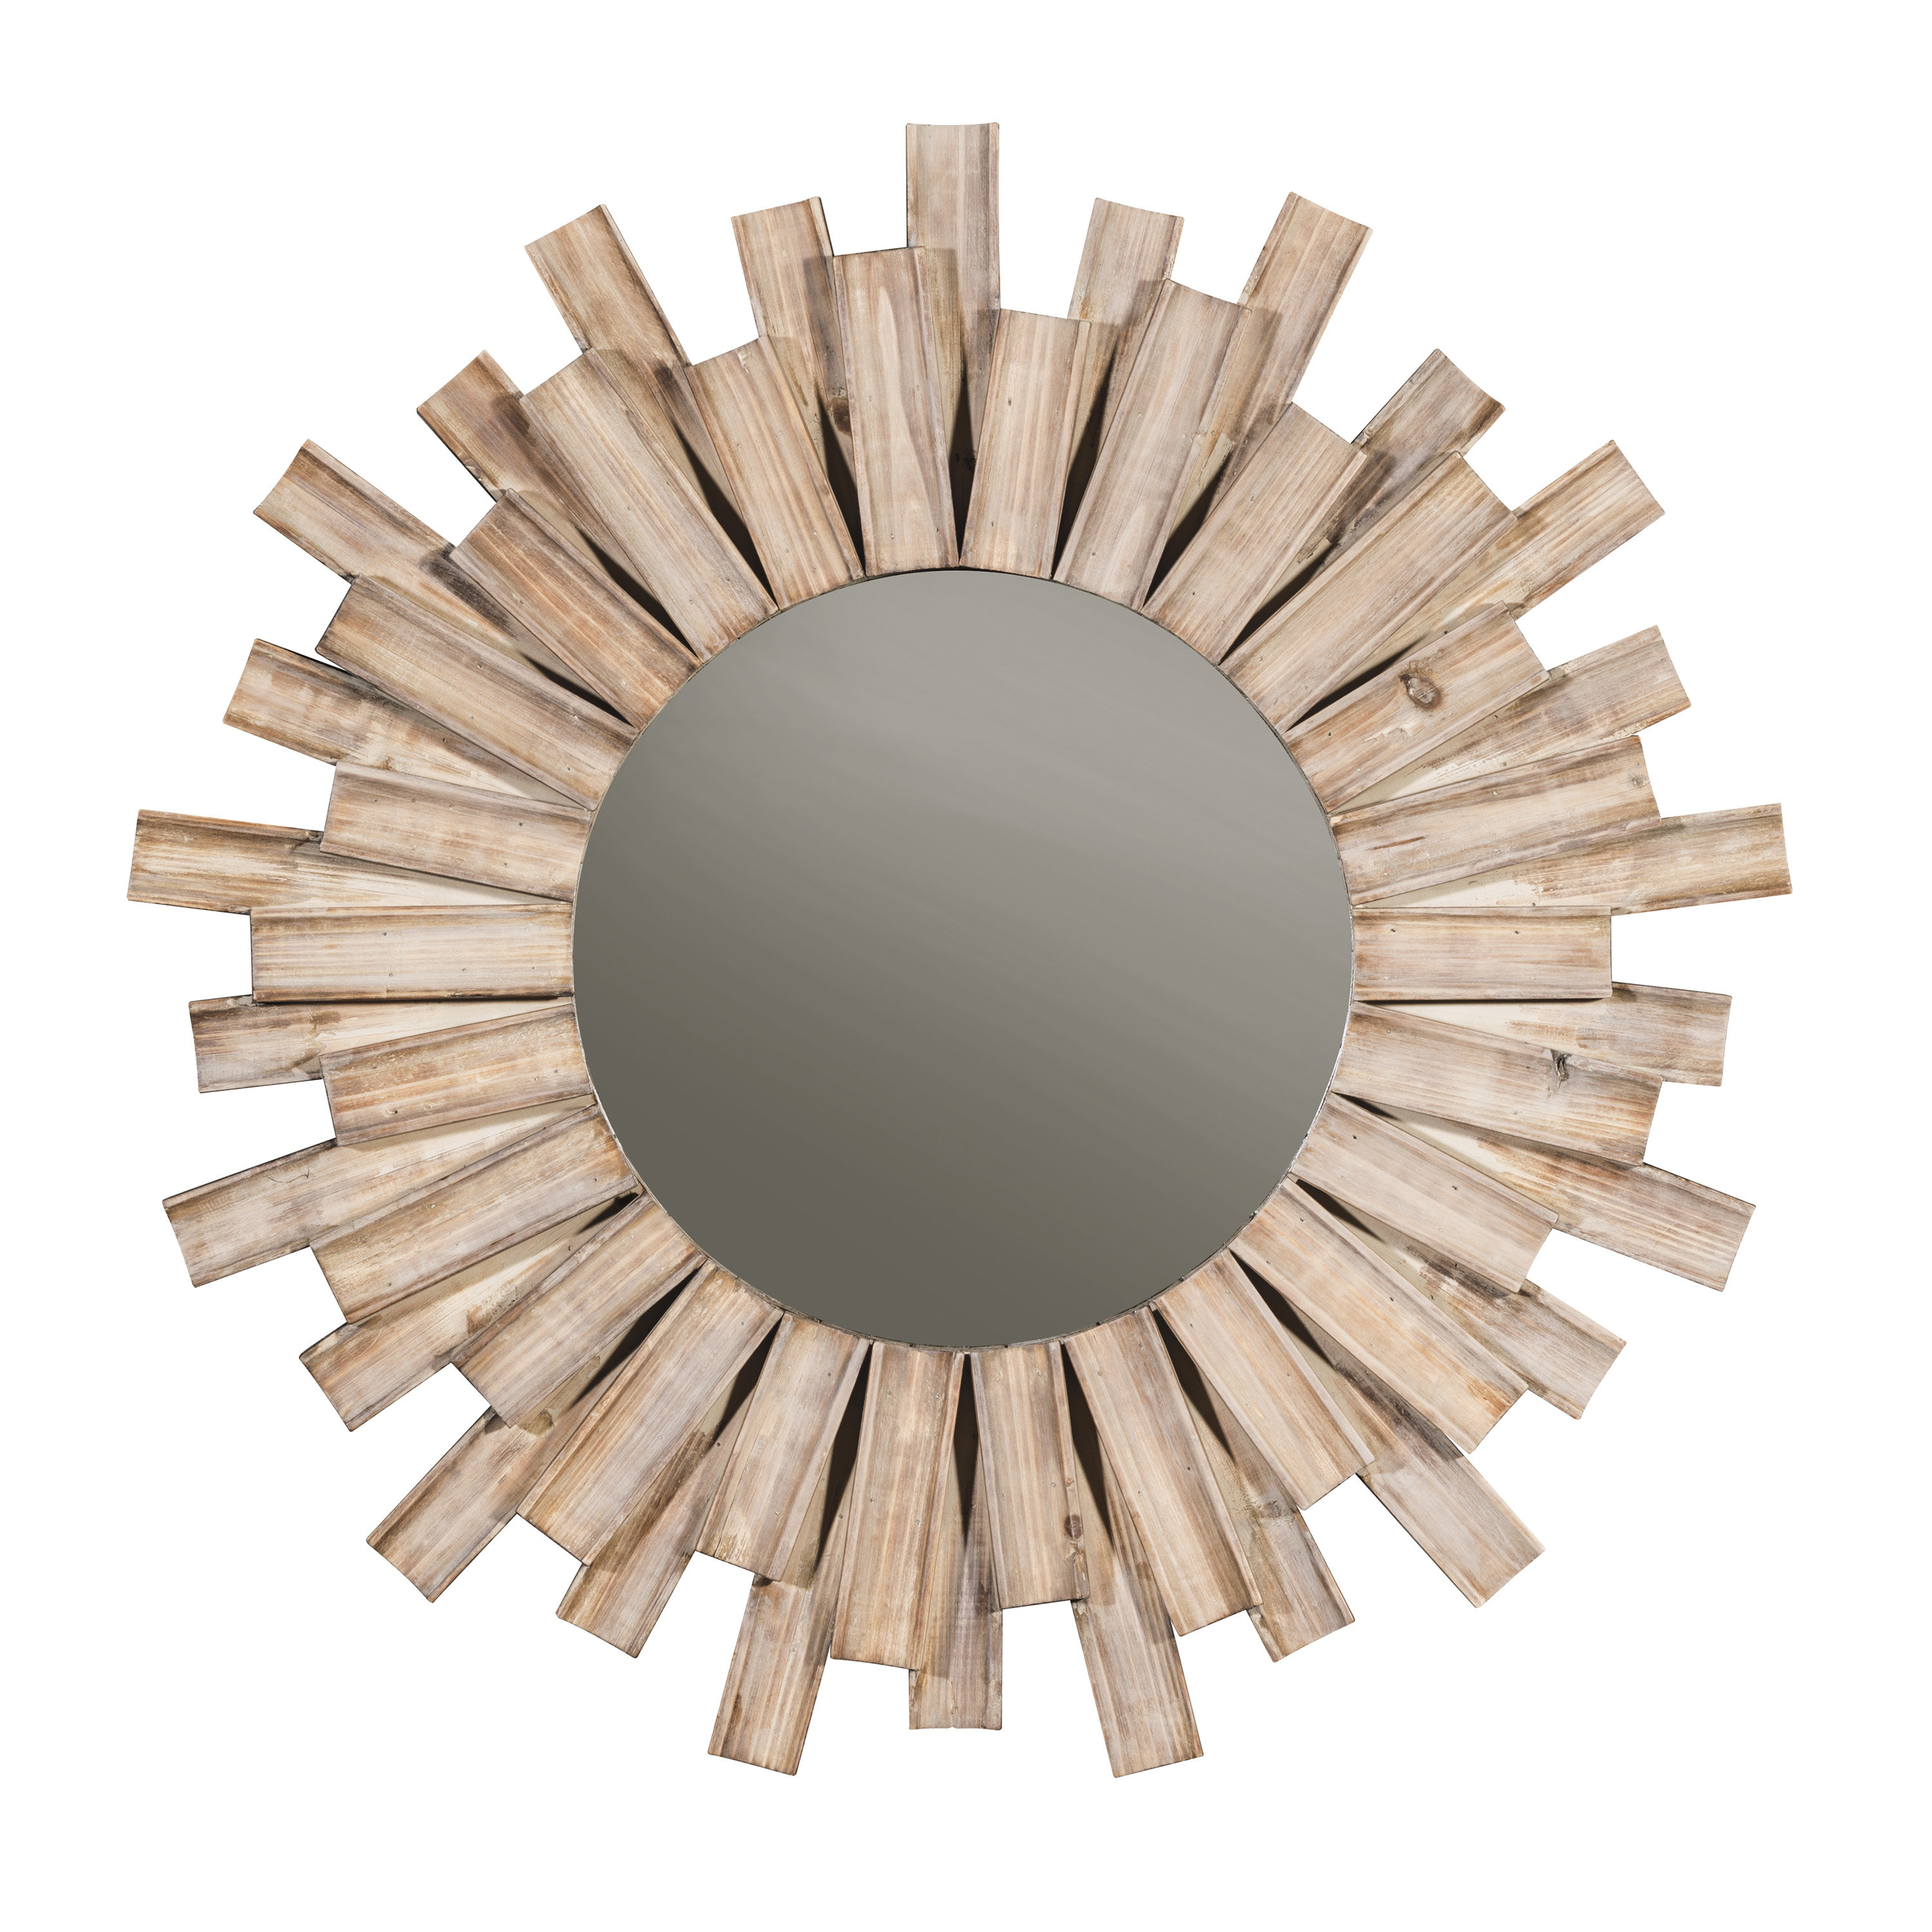 Perillo Burst Wood Accent Mirror Intended For Most Recent Josephson Starburst Glam Beveled Accent Wall Mirrors (Gallery 15 of 20)